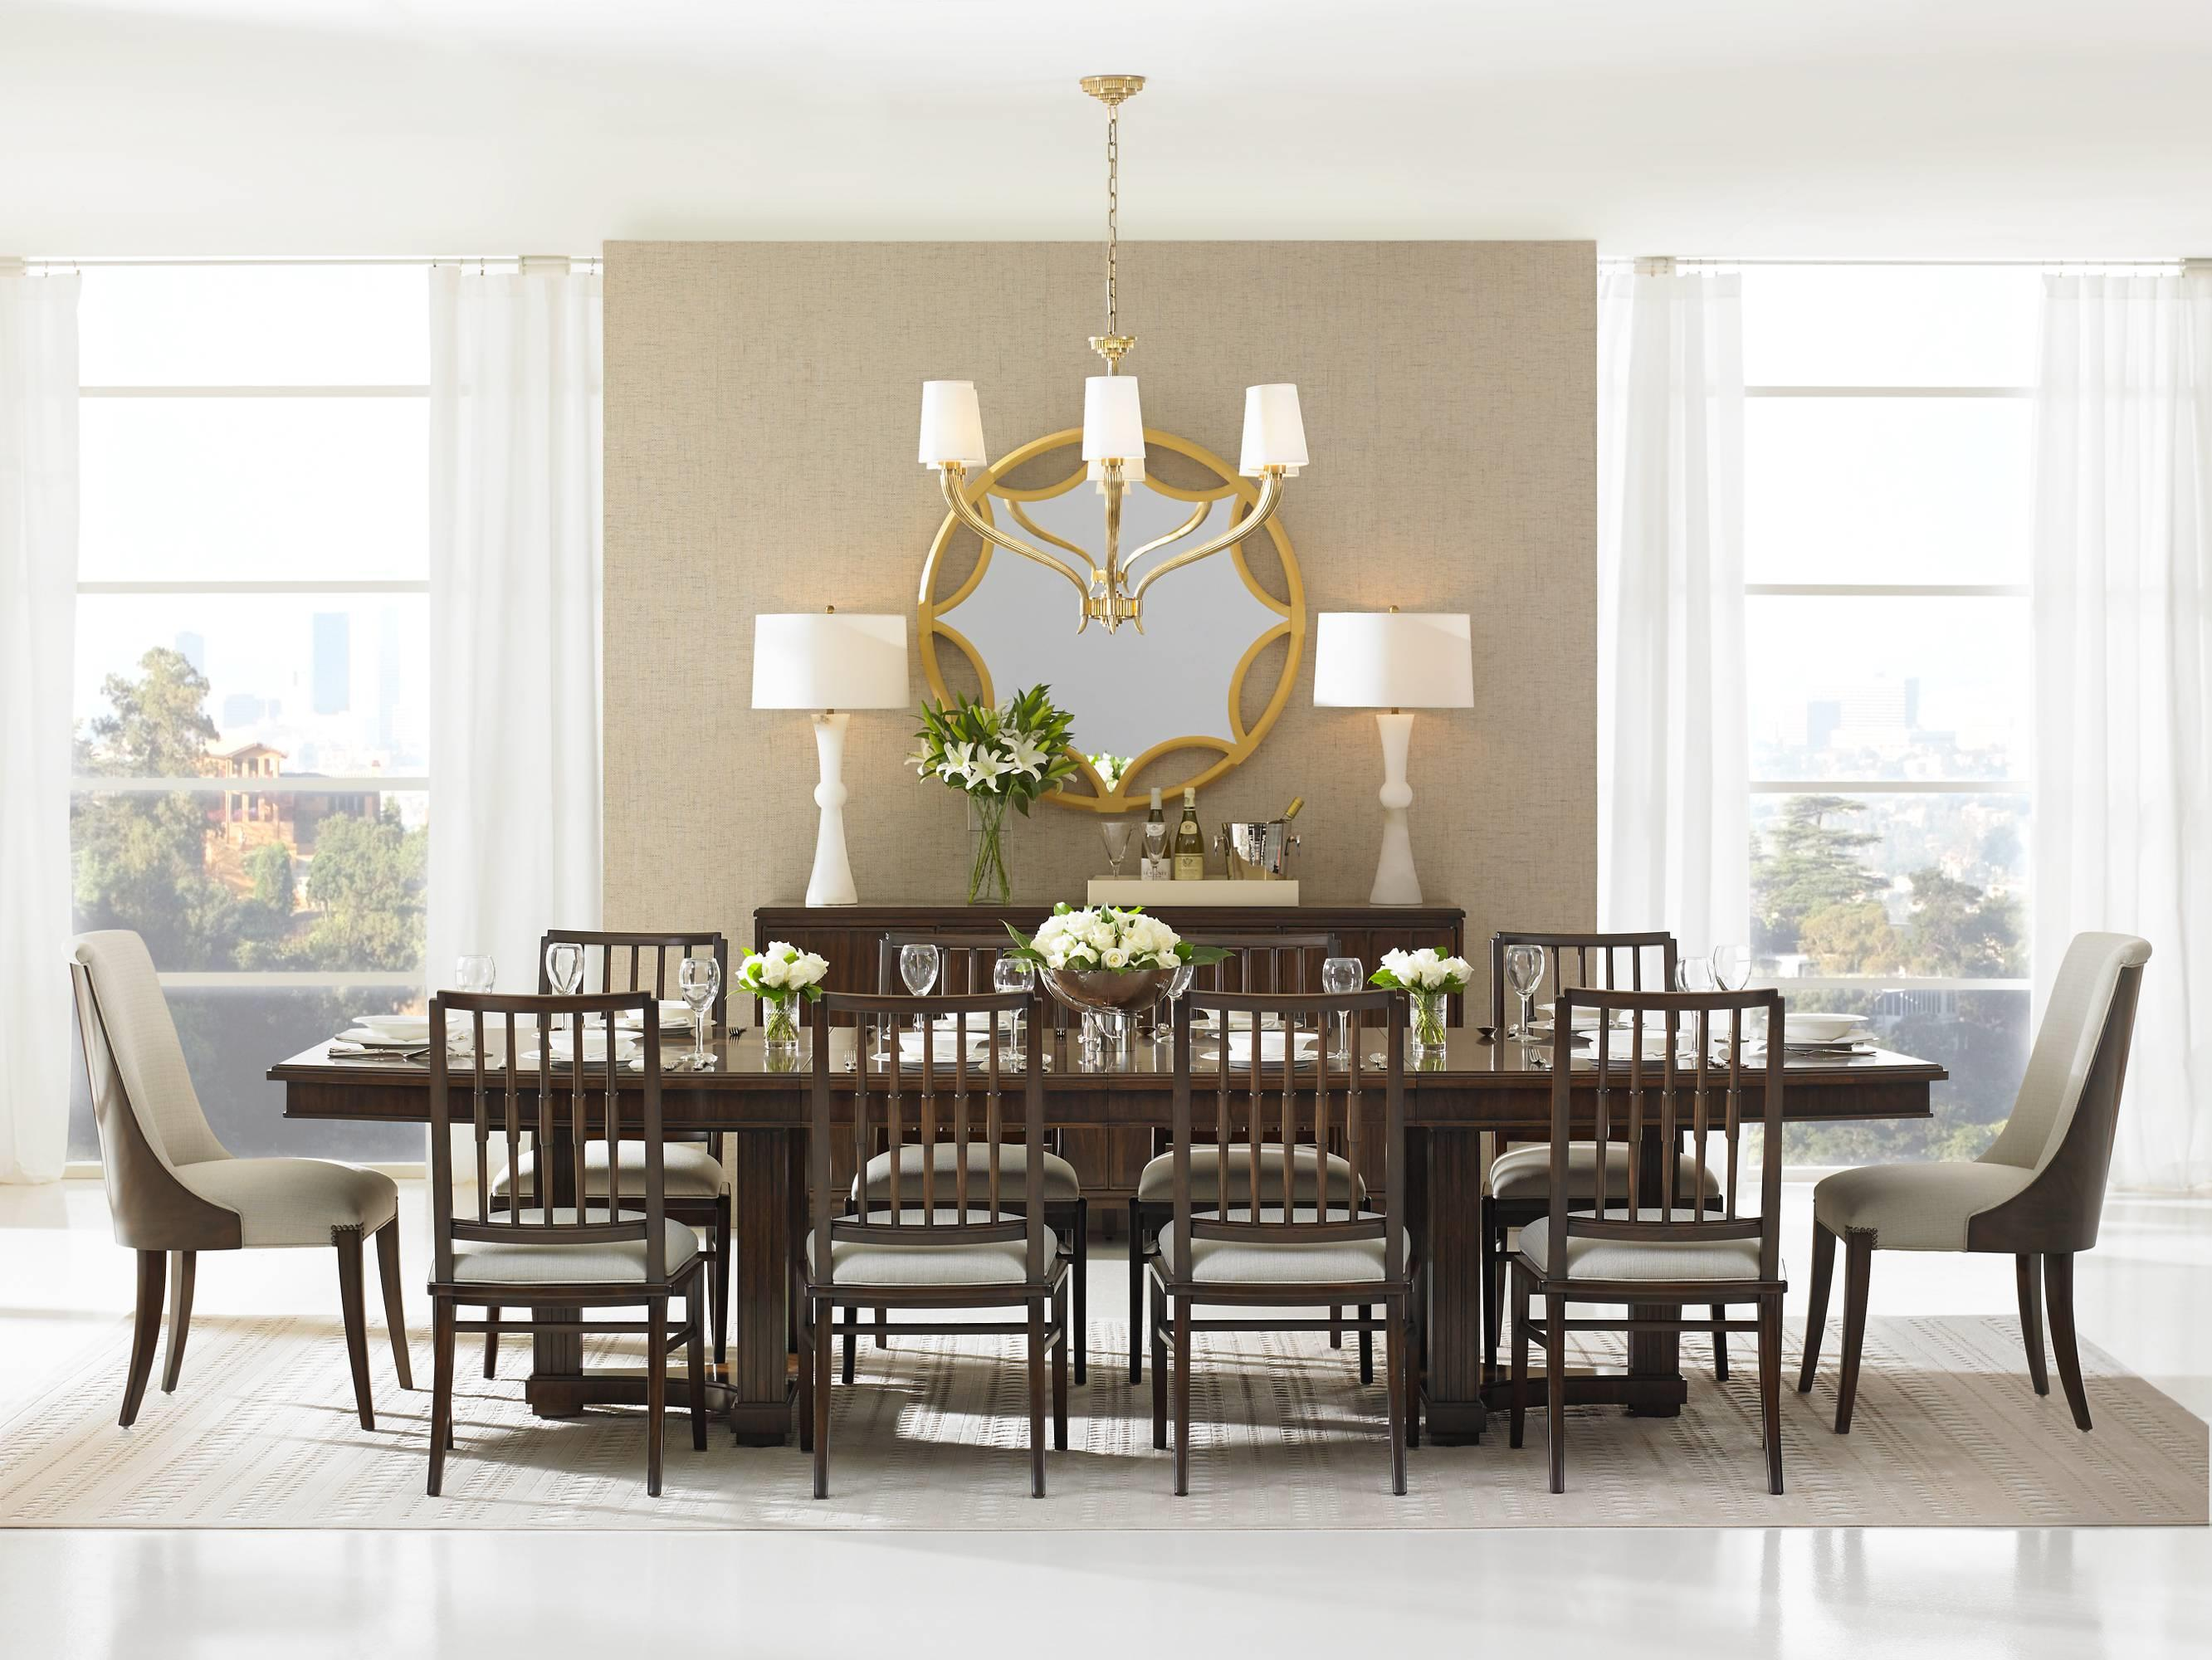 Stanley Furniture Crestaire Formal Dining Room Group - Item Number: 436-1 Dining Room Group 1